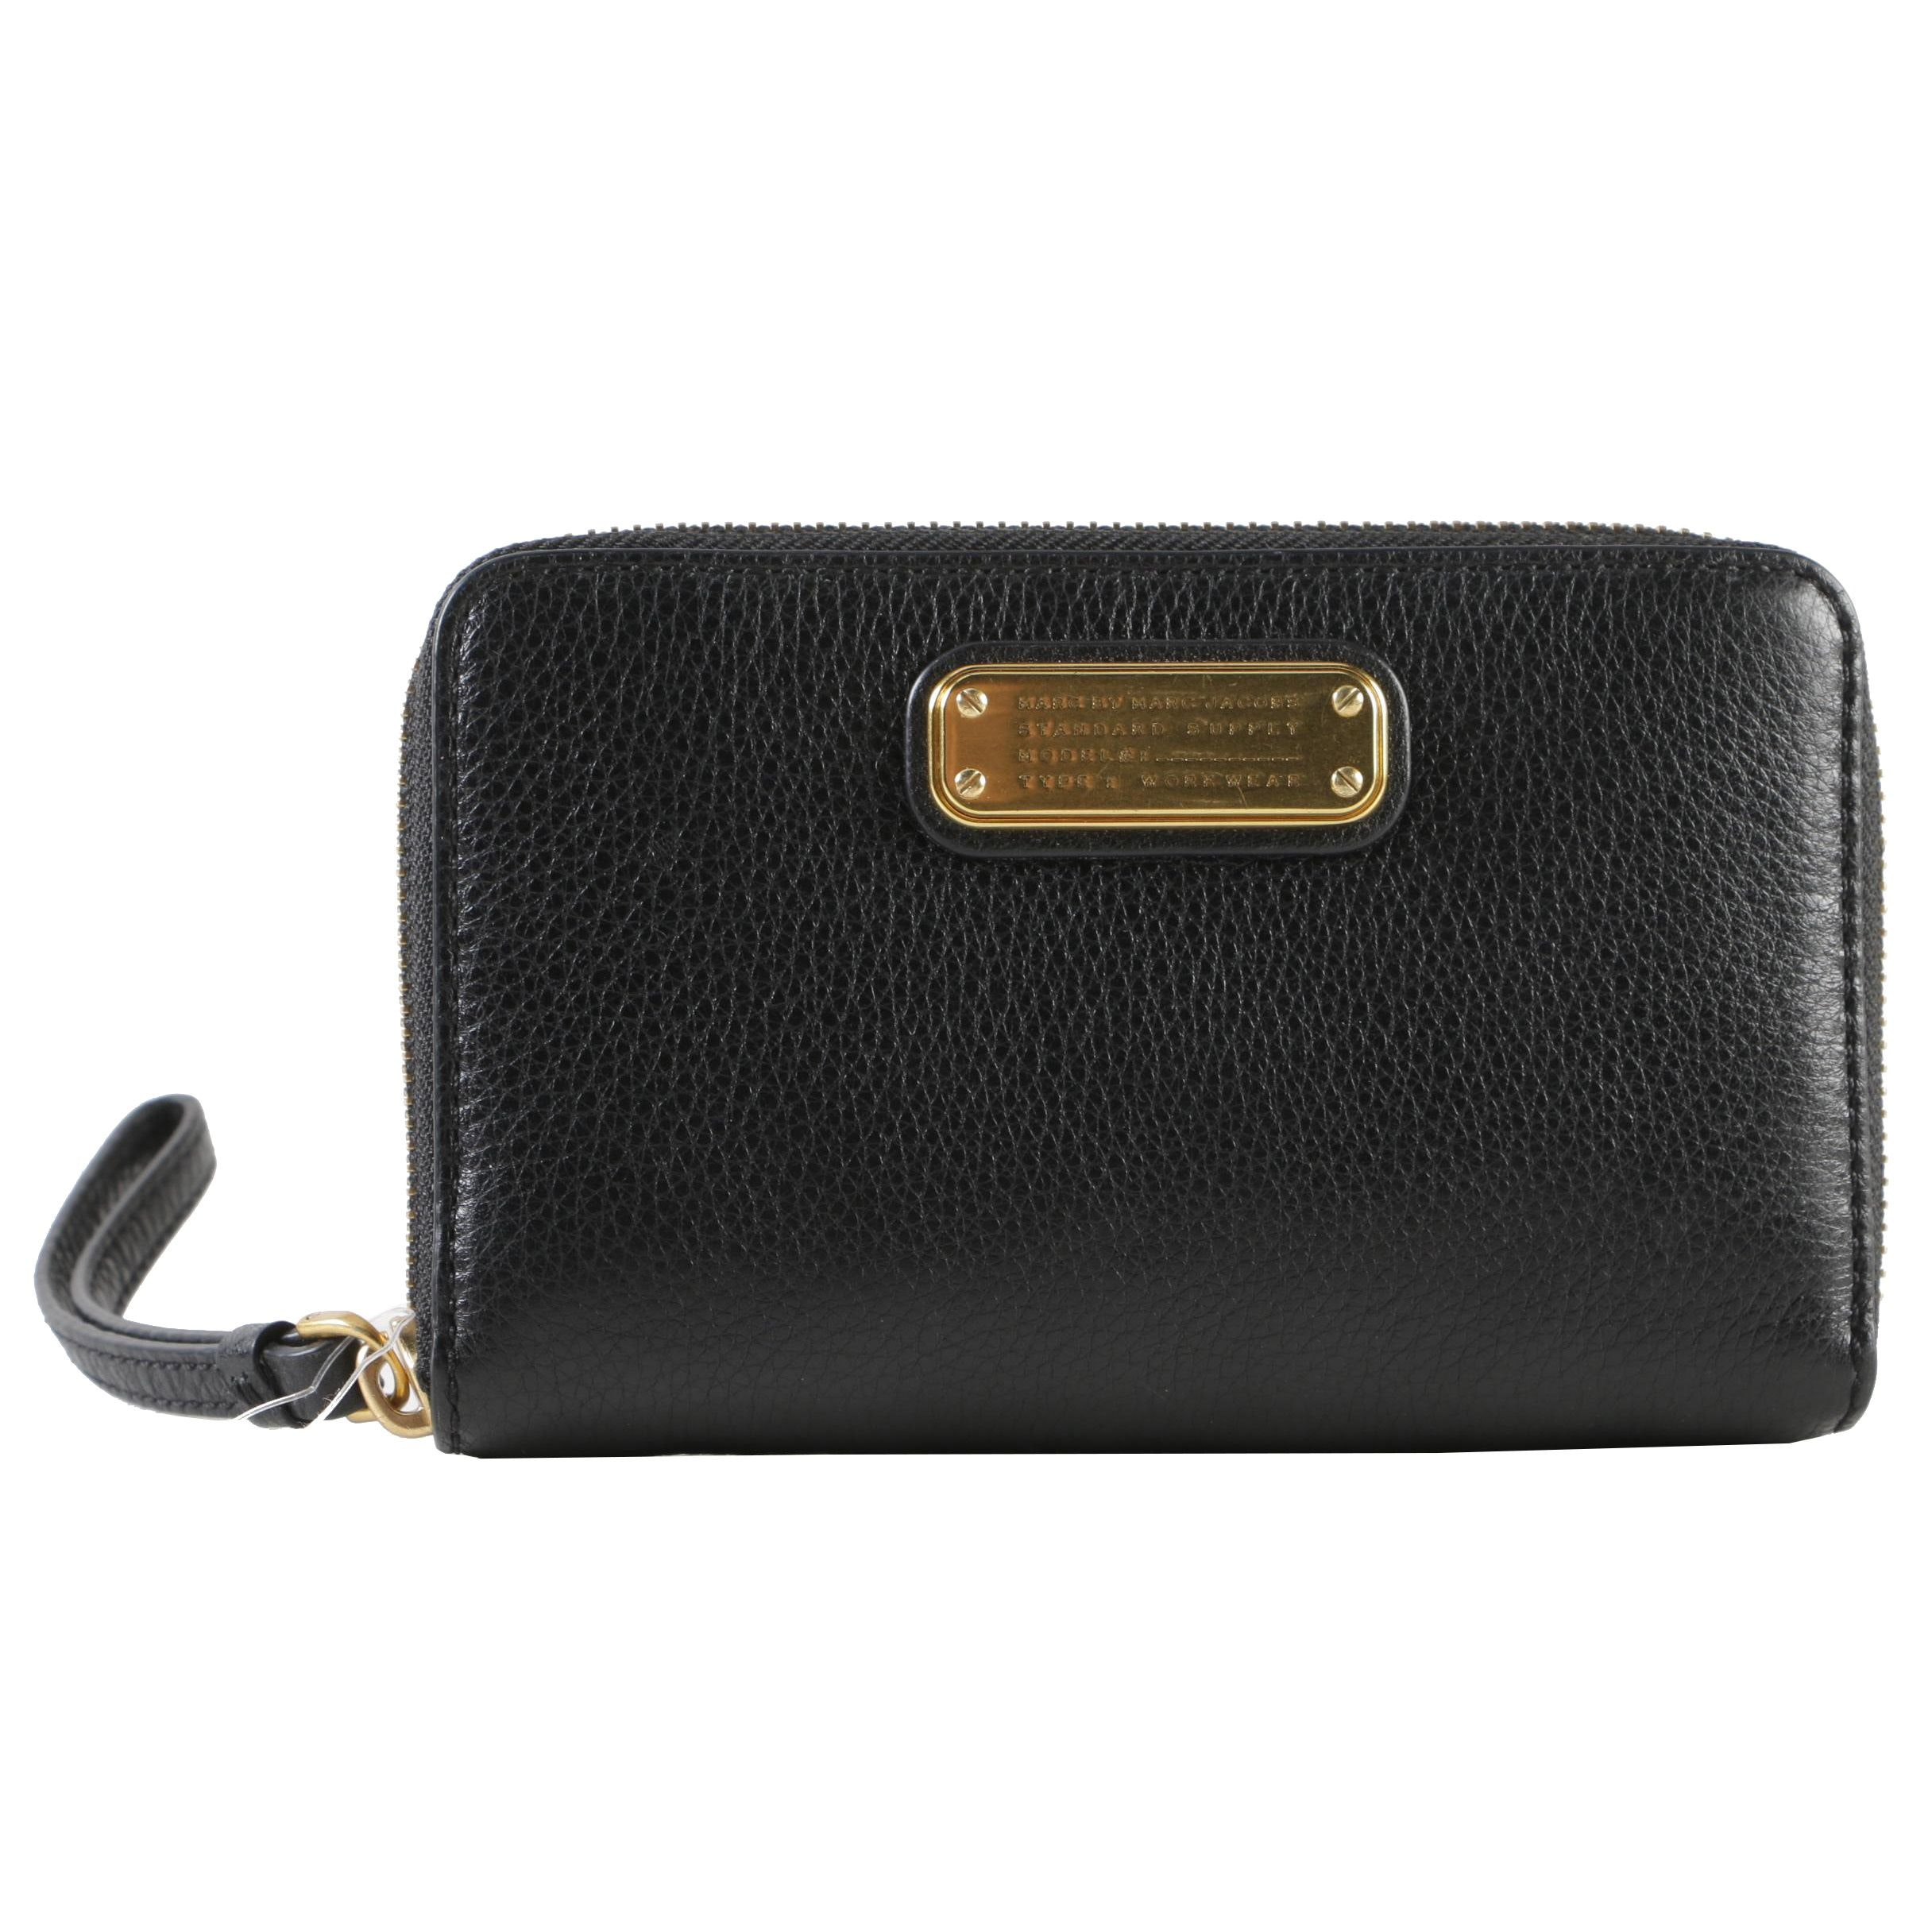 Marc by Marc Jacobs Black Pebbled Leather Zip Wallet